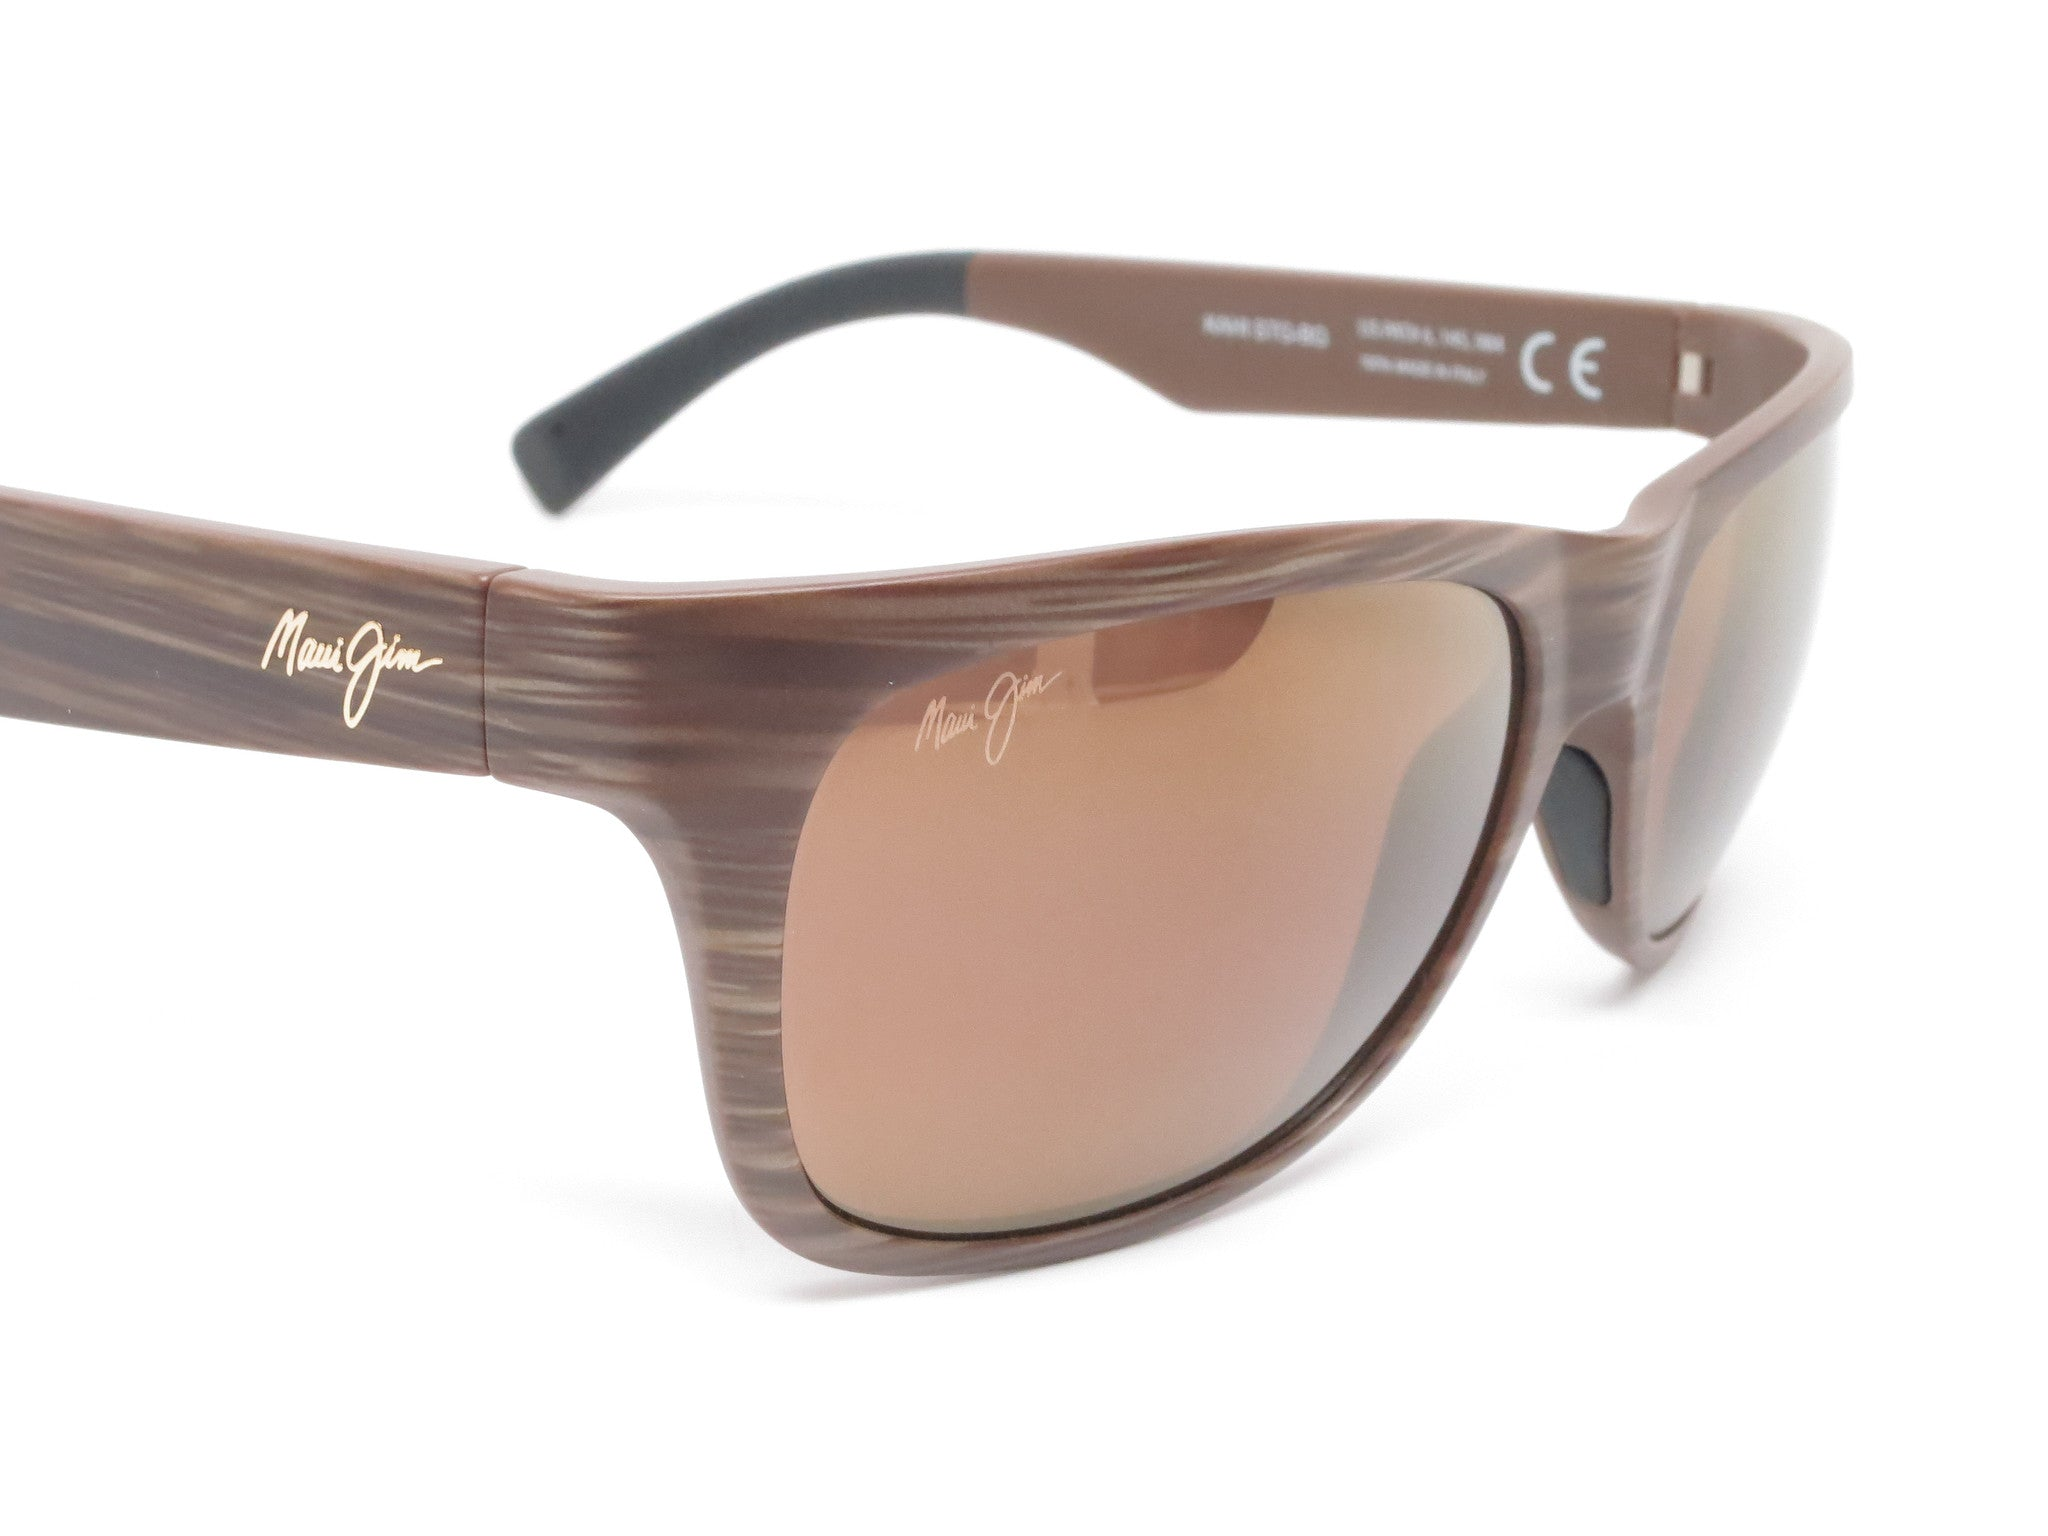 Maui Jim Kahi Mj H736 25w Matte Brown Wood Grain Polarized